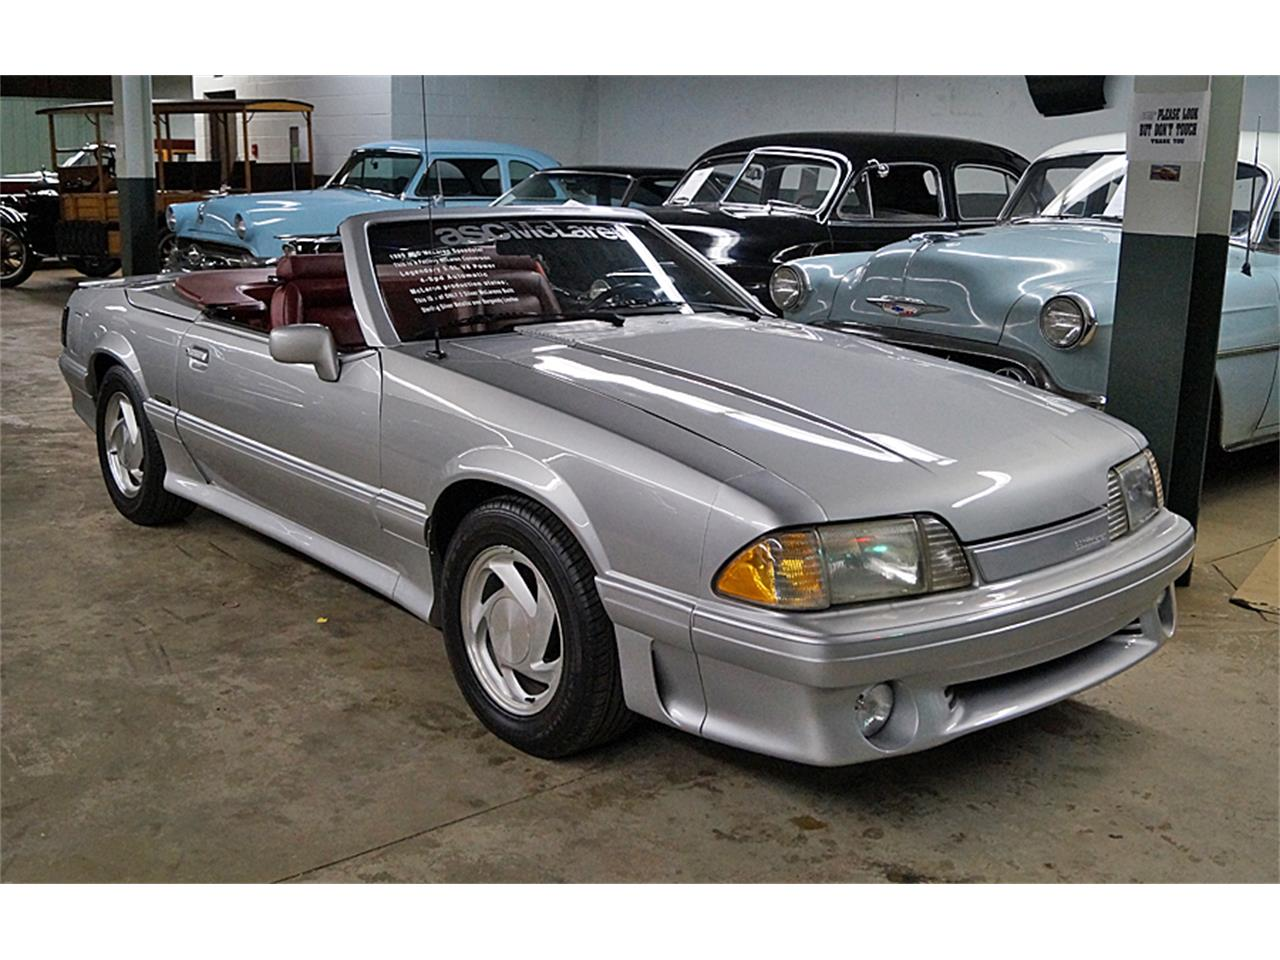 Mclaren For Sale >> 1989 Ford Mustang Mclaren For Sale Classiccars Com Cc 1148045